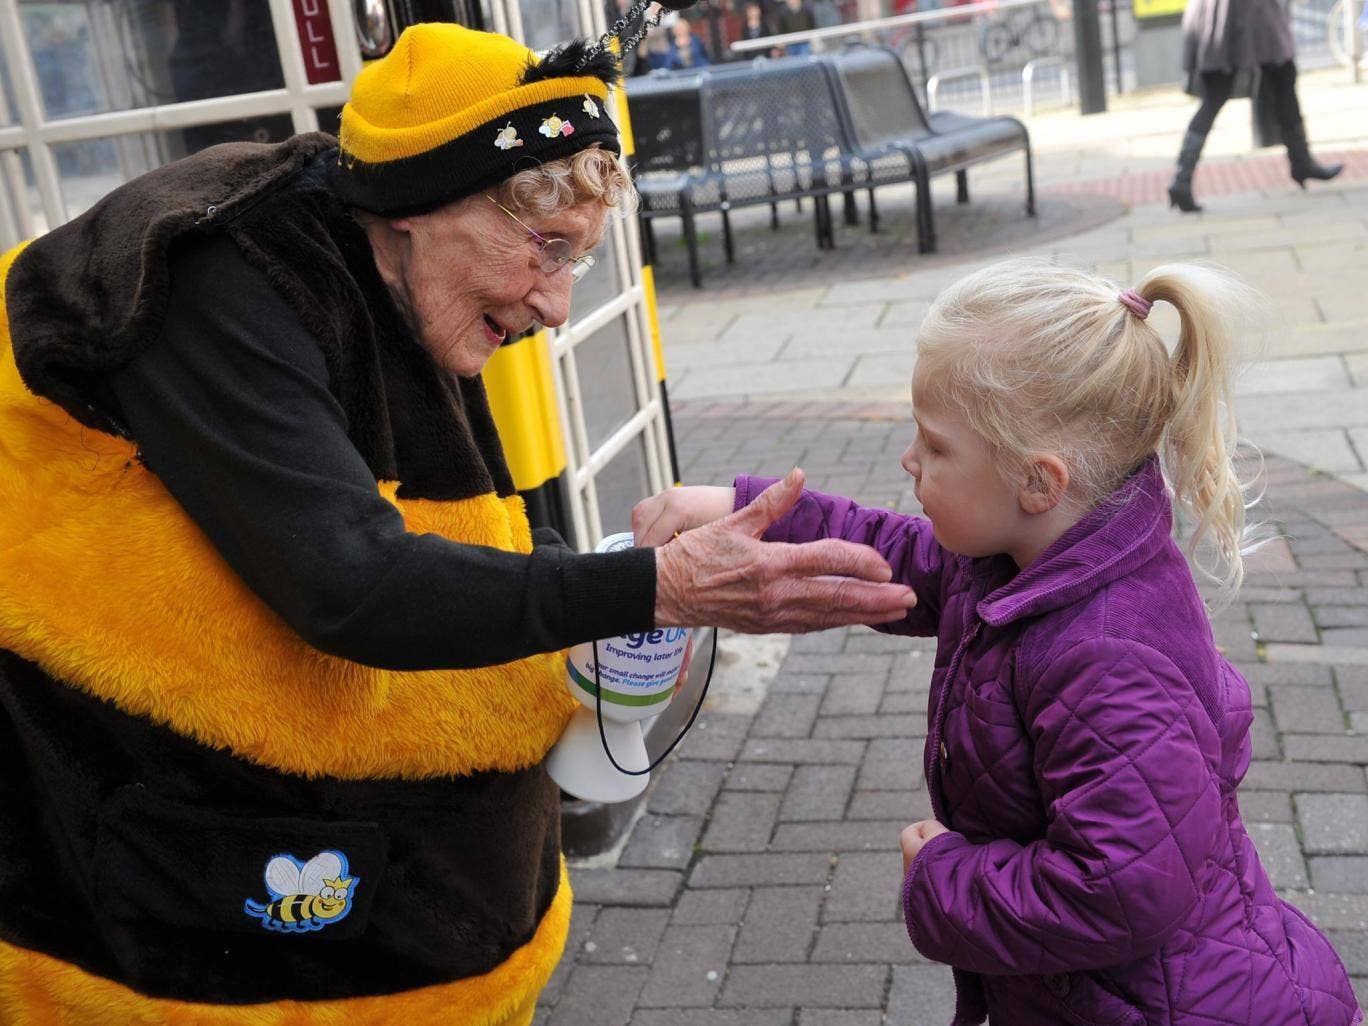 Known as the Busy Bee throughout east Yorkshire, 93-year-old Jean began raising money for Age UK Hull 14 years ago after her husband died. She wears a bee costume (made by her daughter) while rattling her tin, and has so far collected over £100,000.